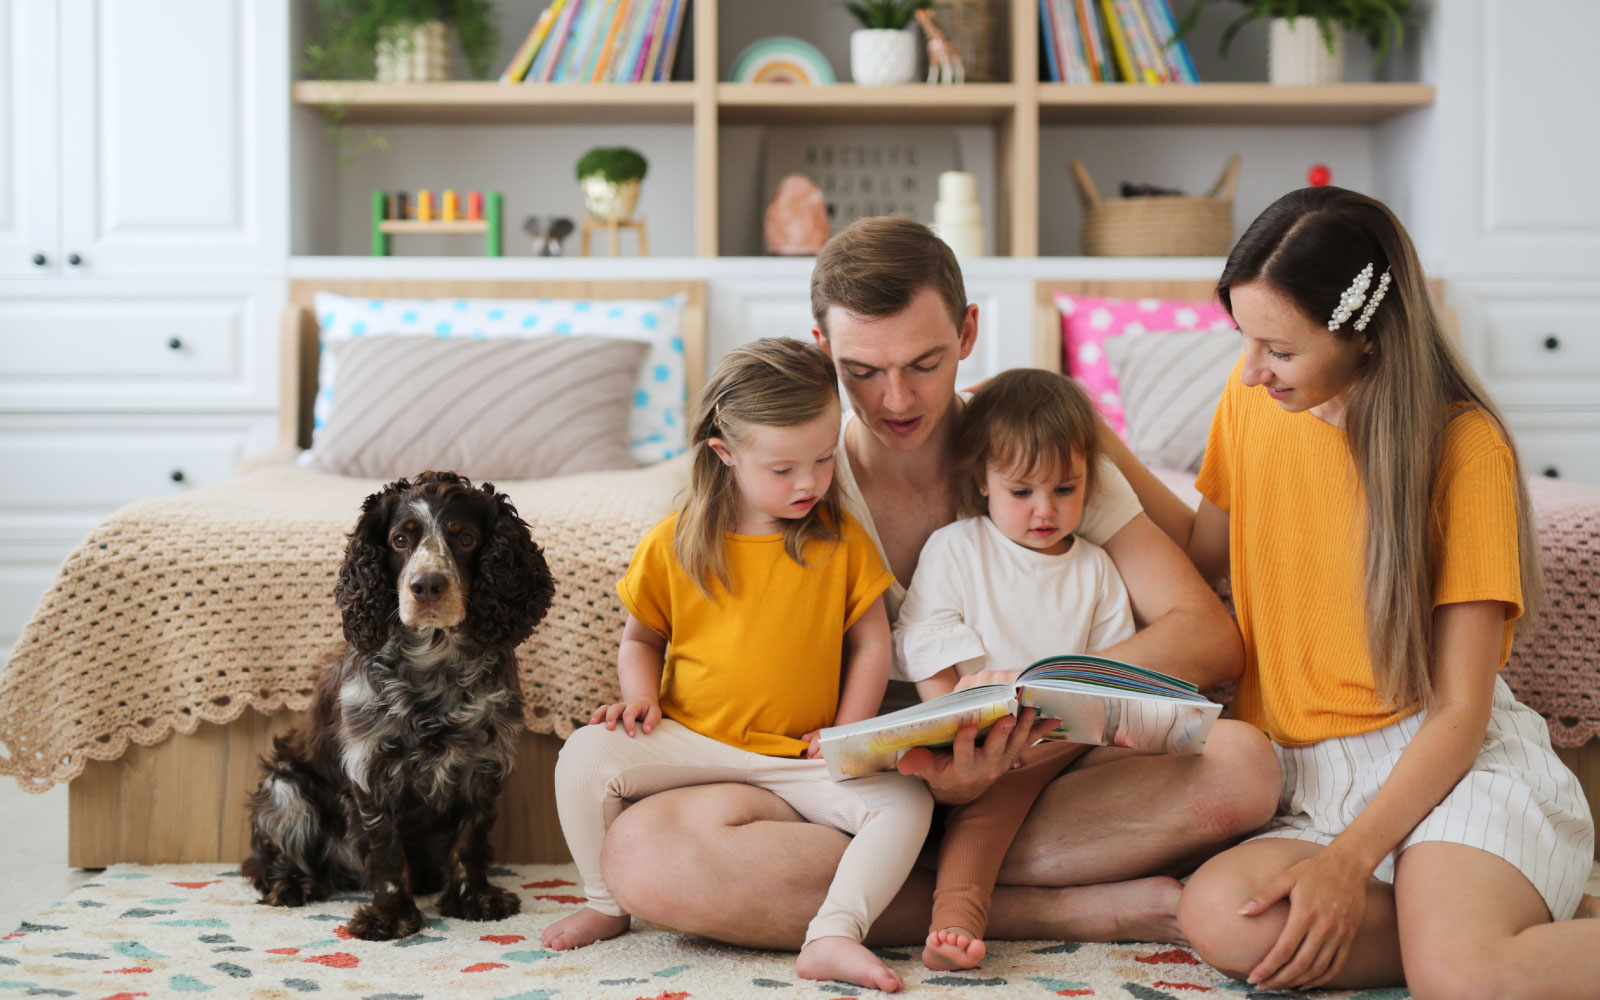 Just ONE Health and Social Care | Providing Care, Support & Accomodation | Family storytime